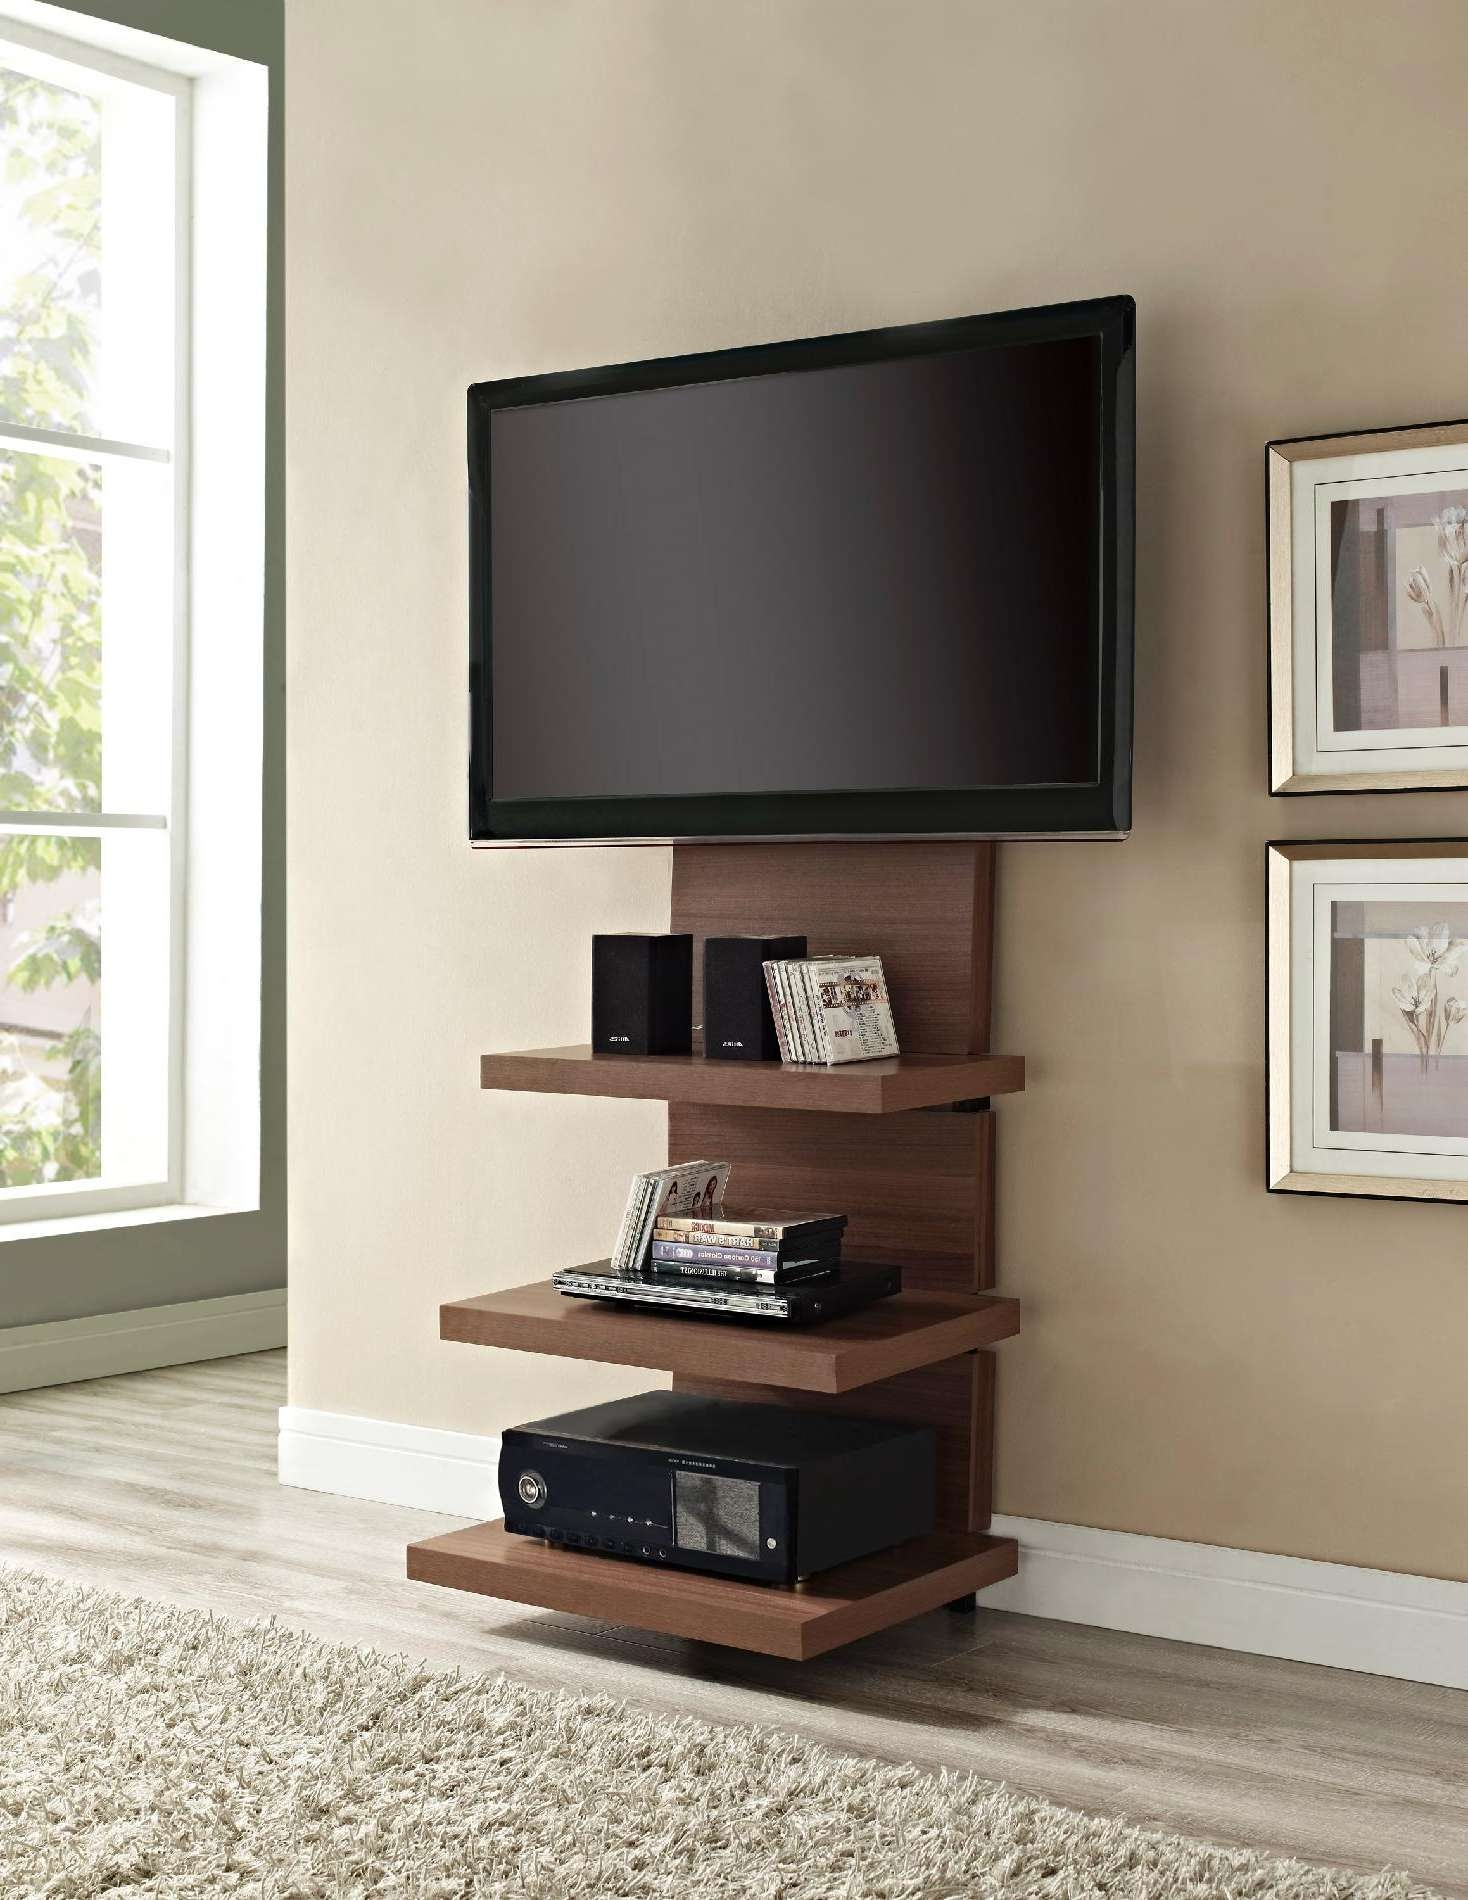 Tall Tv Stand For Bedroom Also Stands New Thin Ideas Images Within Modern Wall Mount Tv Stands (View 12 of 20)